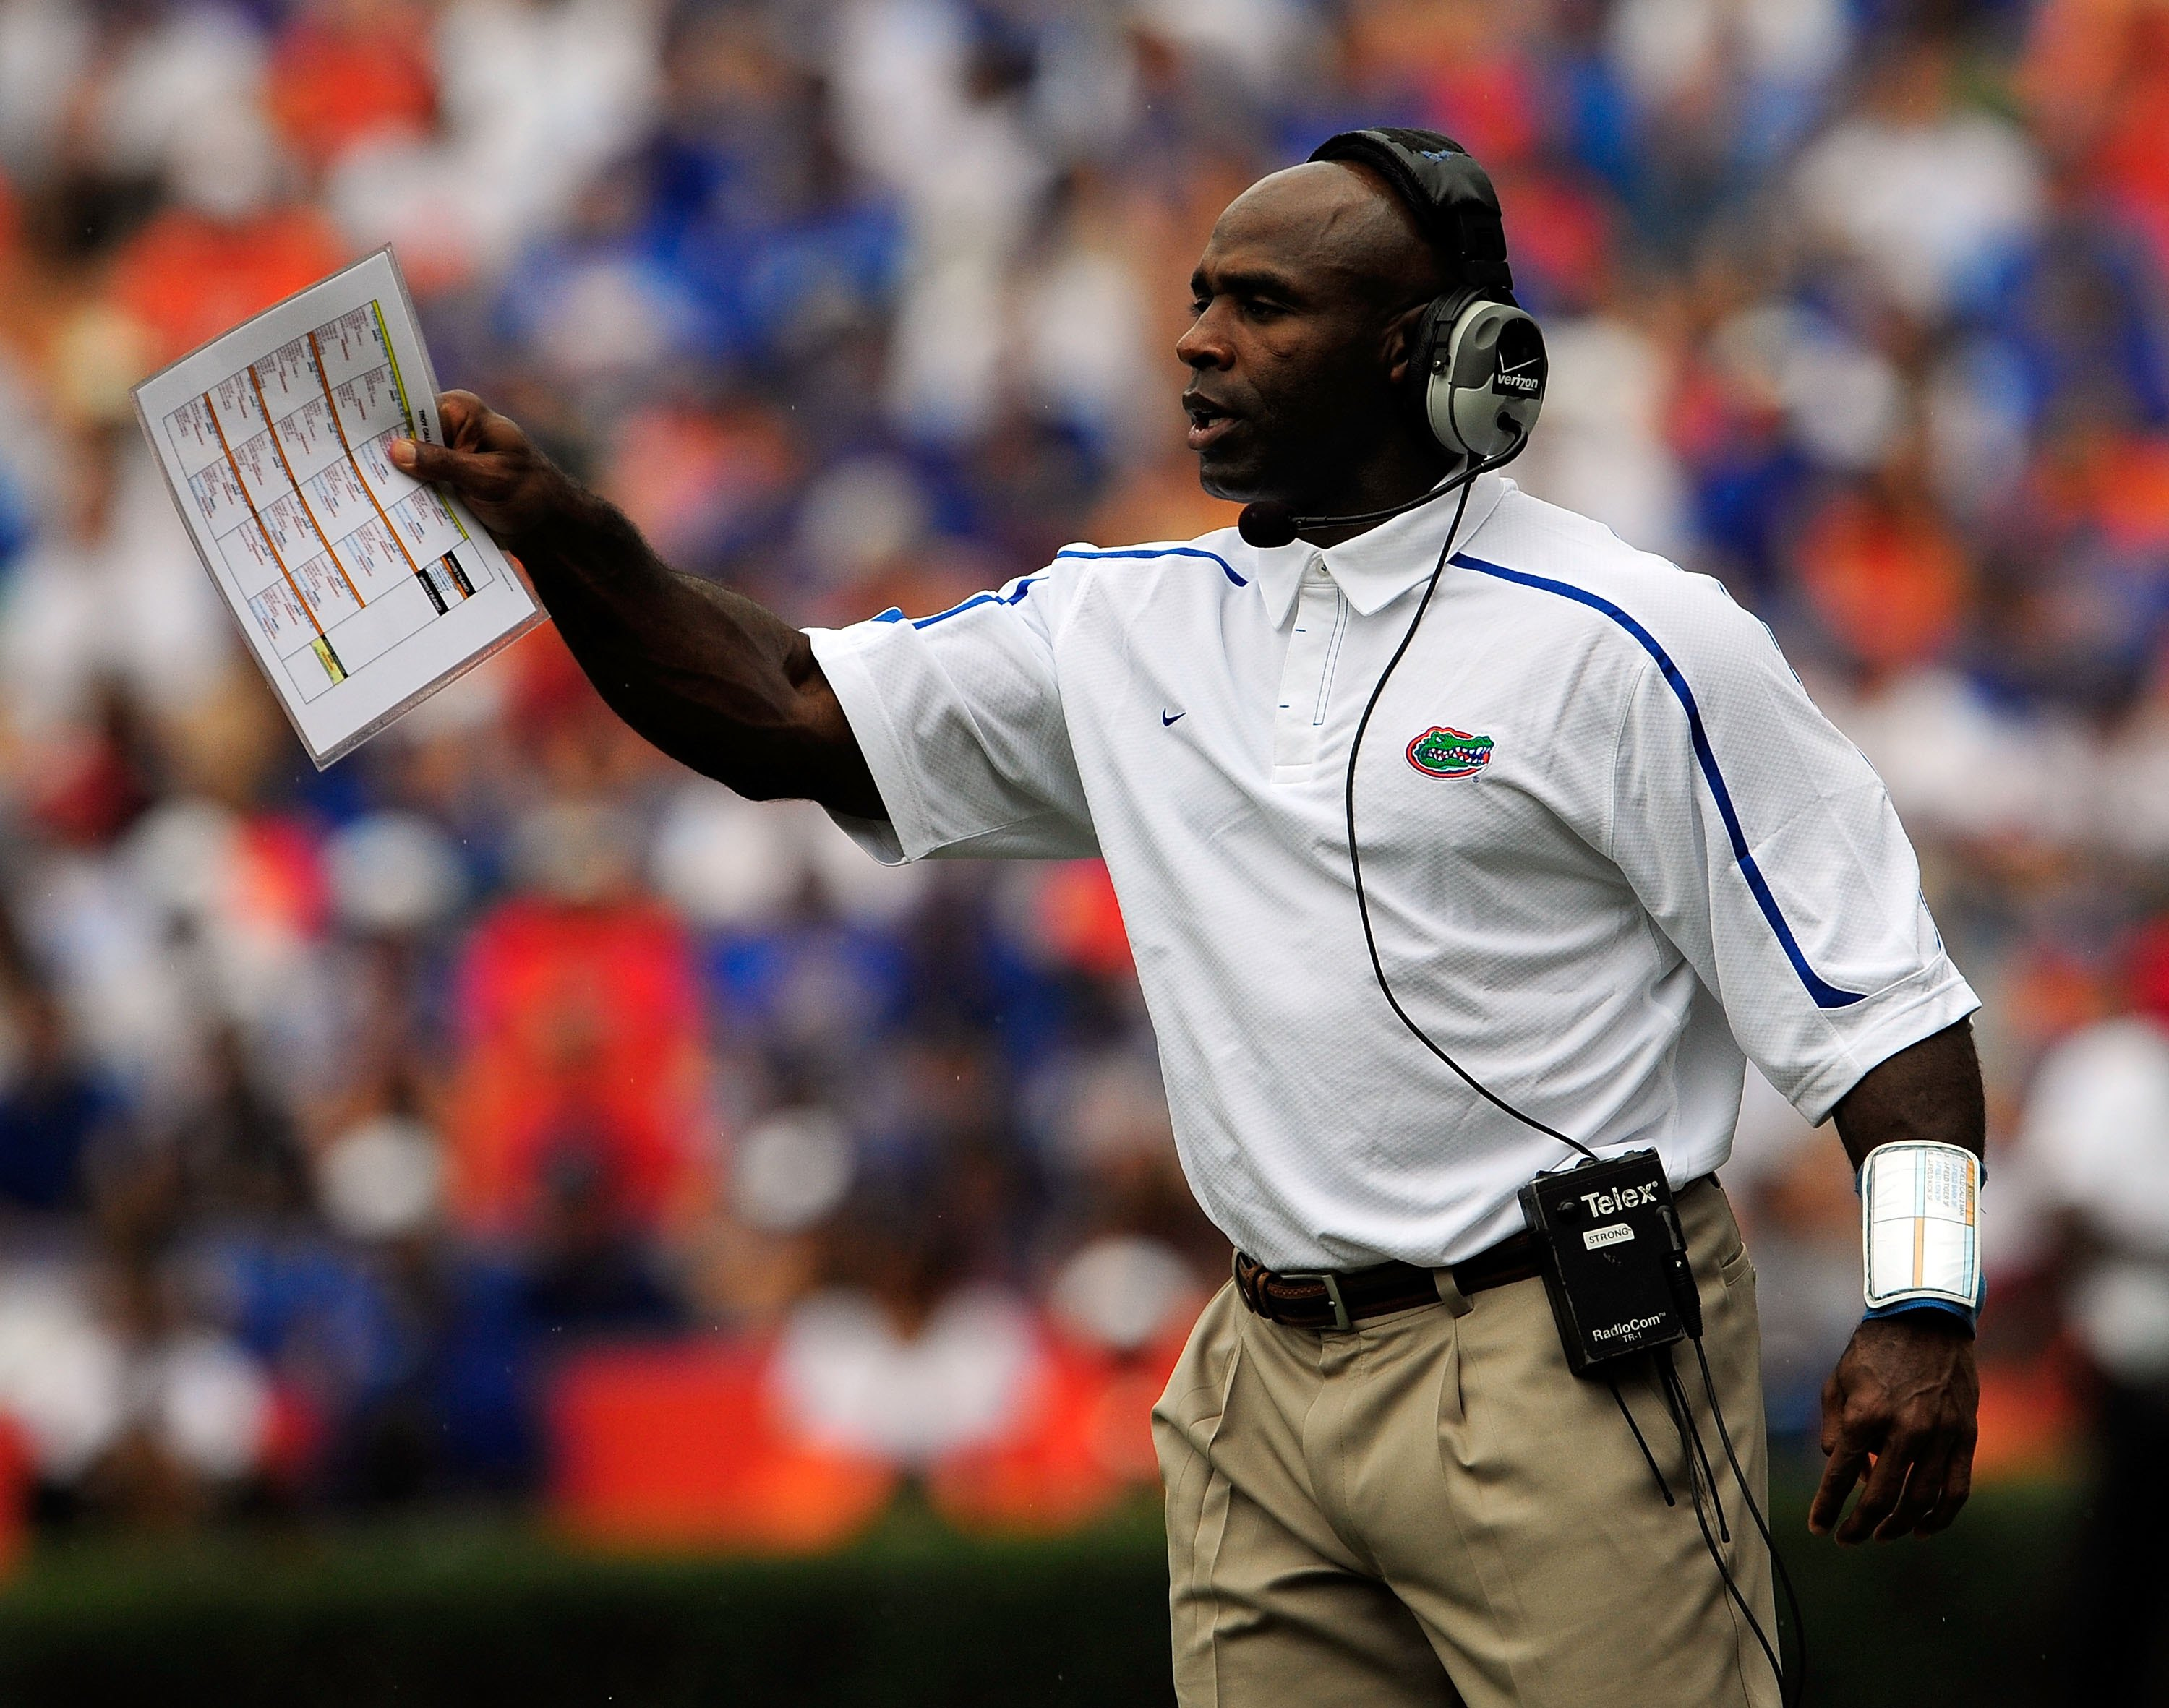 GAINESVILLE, FL - SEPTEMBER 12:  Defensive coordinator Charlie Strong of the Florida Gators calls out a signal during the game against the Troy Trojans at Ben Hill Griffin Stadium on September 12, 2009 in Gainesville, Florida.  (Photo by Sam Greenwood/Get